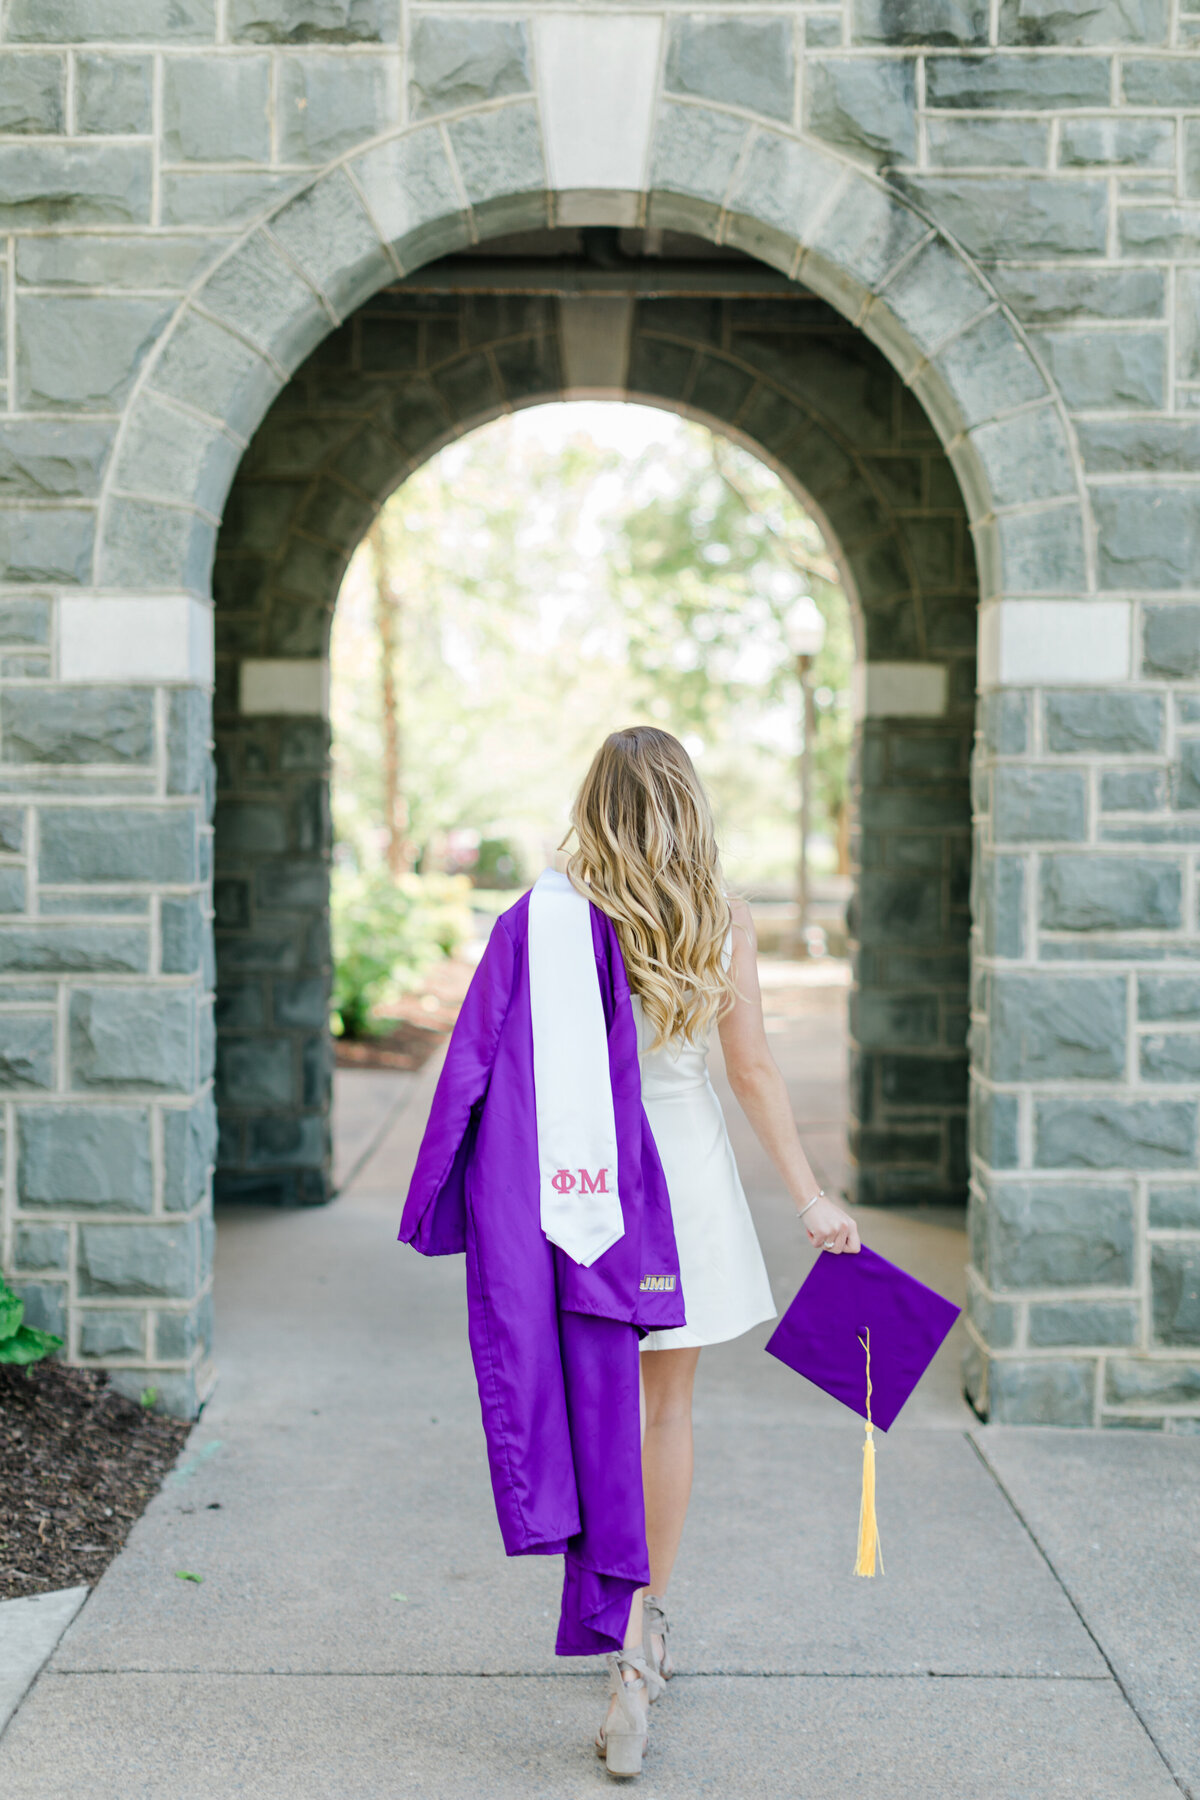 Brooke_Gore_JMU_Senior_Graduation_Session_2020_Angelika_Johns_Photography-2431